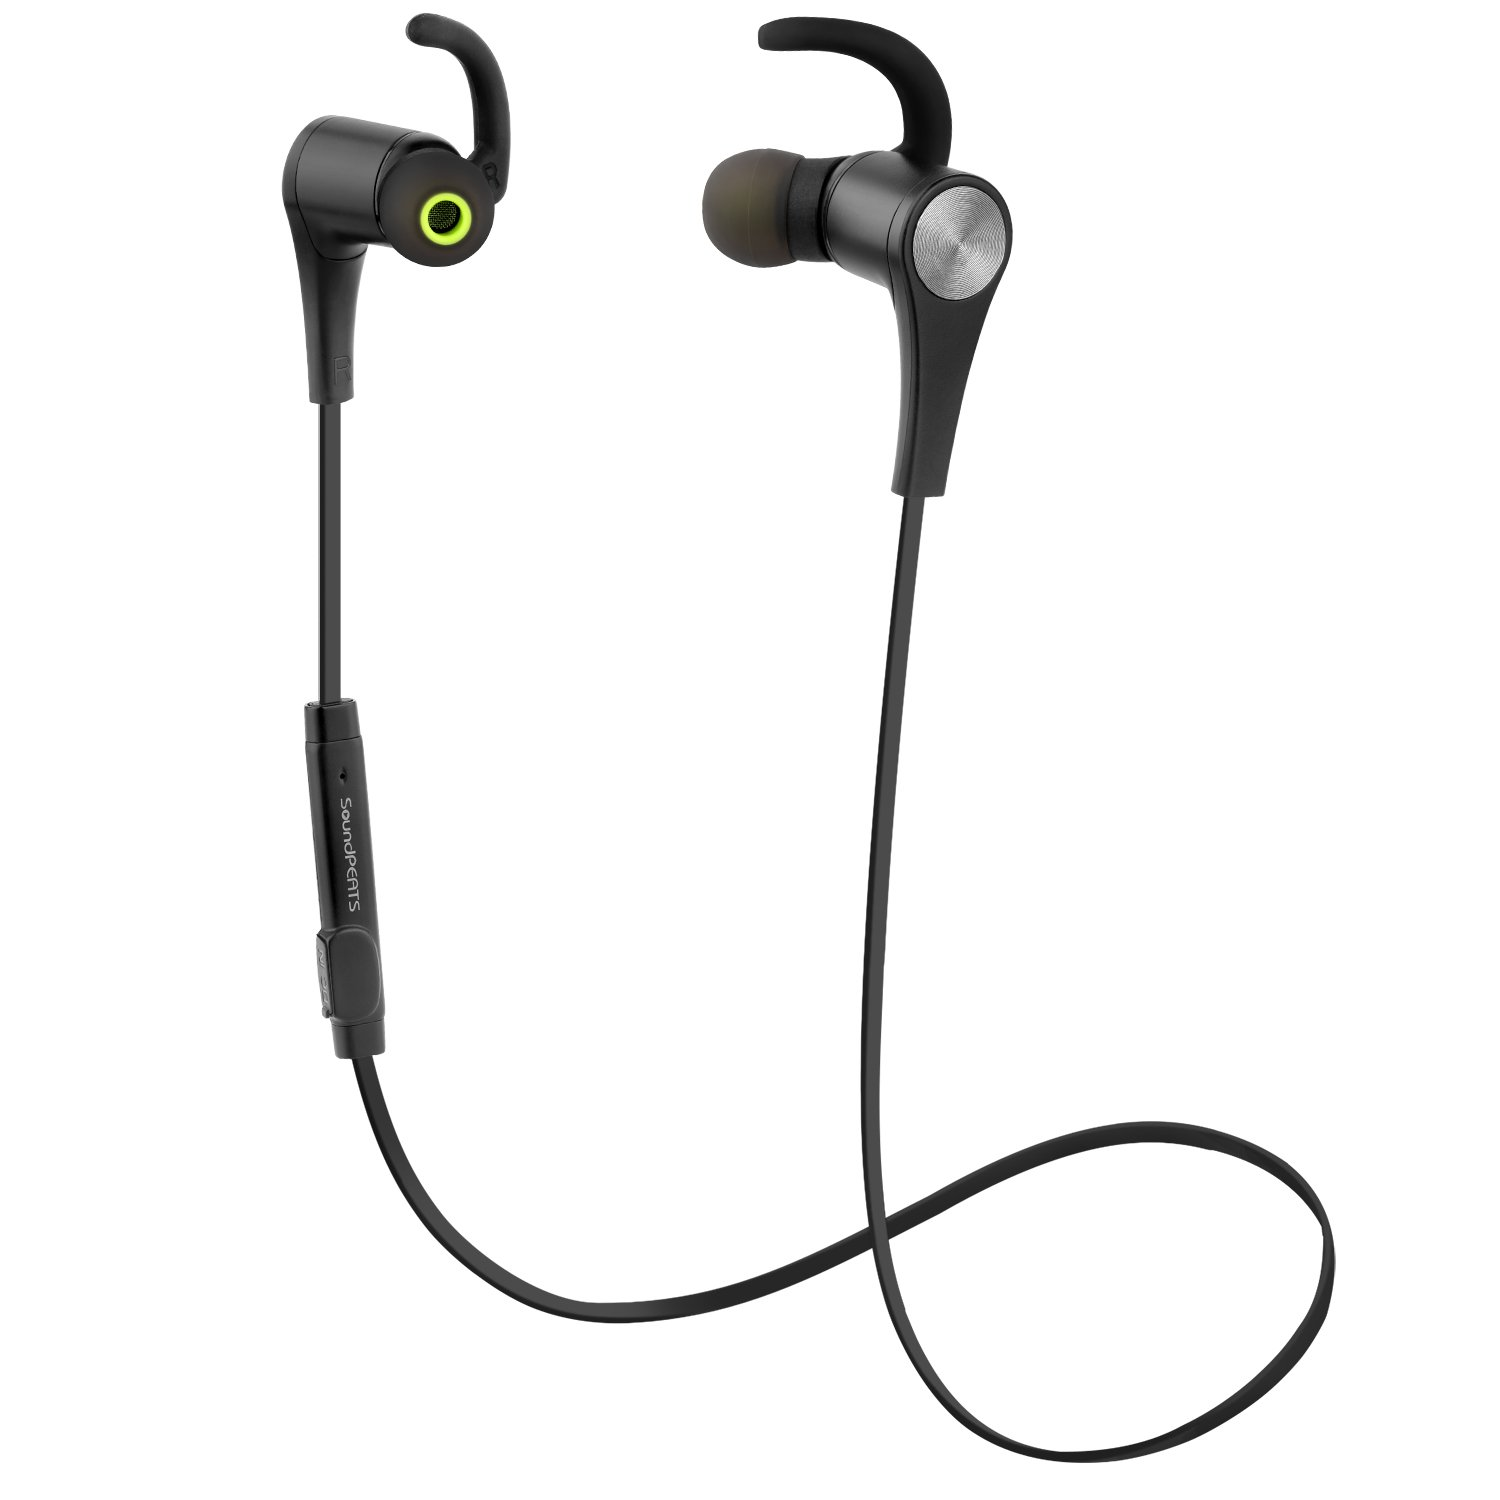 bluetooth headphones soundpeats wireless 4 1 magnetic earbuds stereo earphones ebay. Black Bedroom Furniture Sets. Home Design Ideas